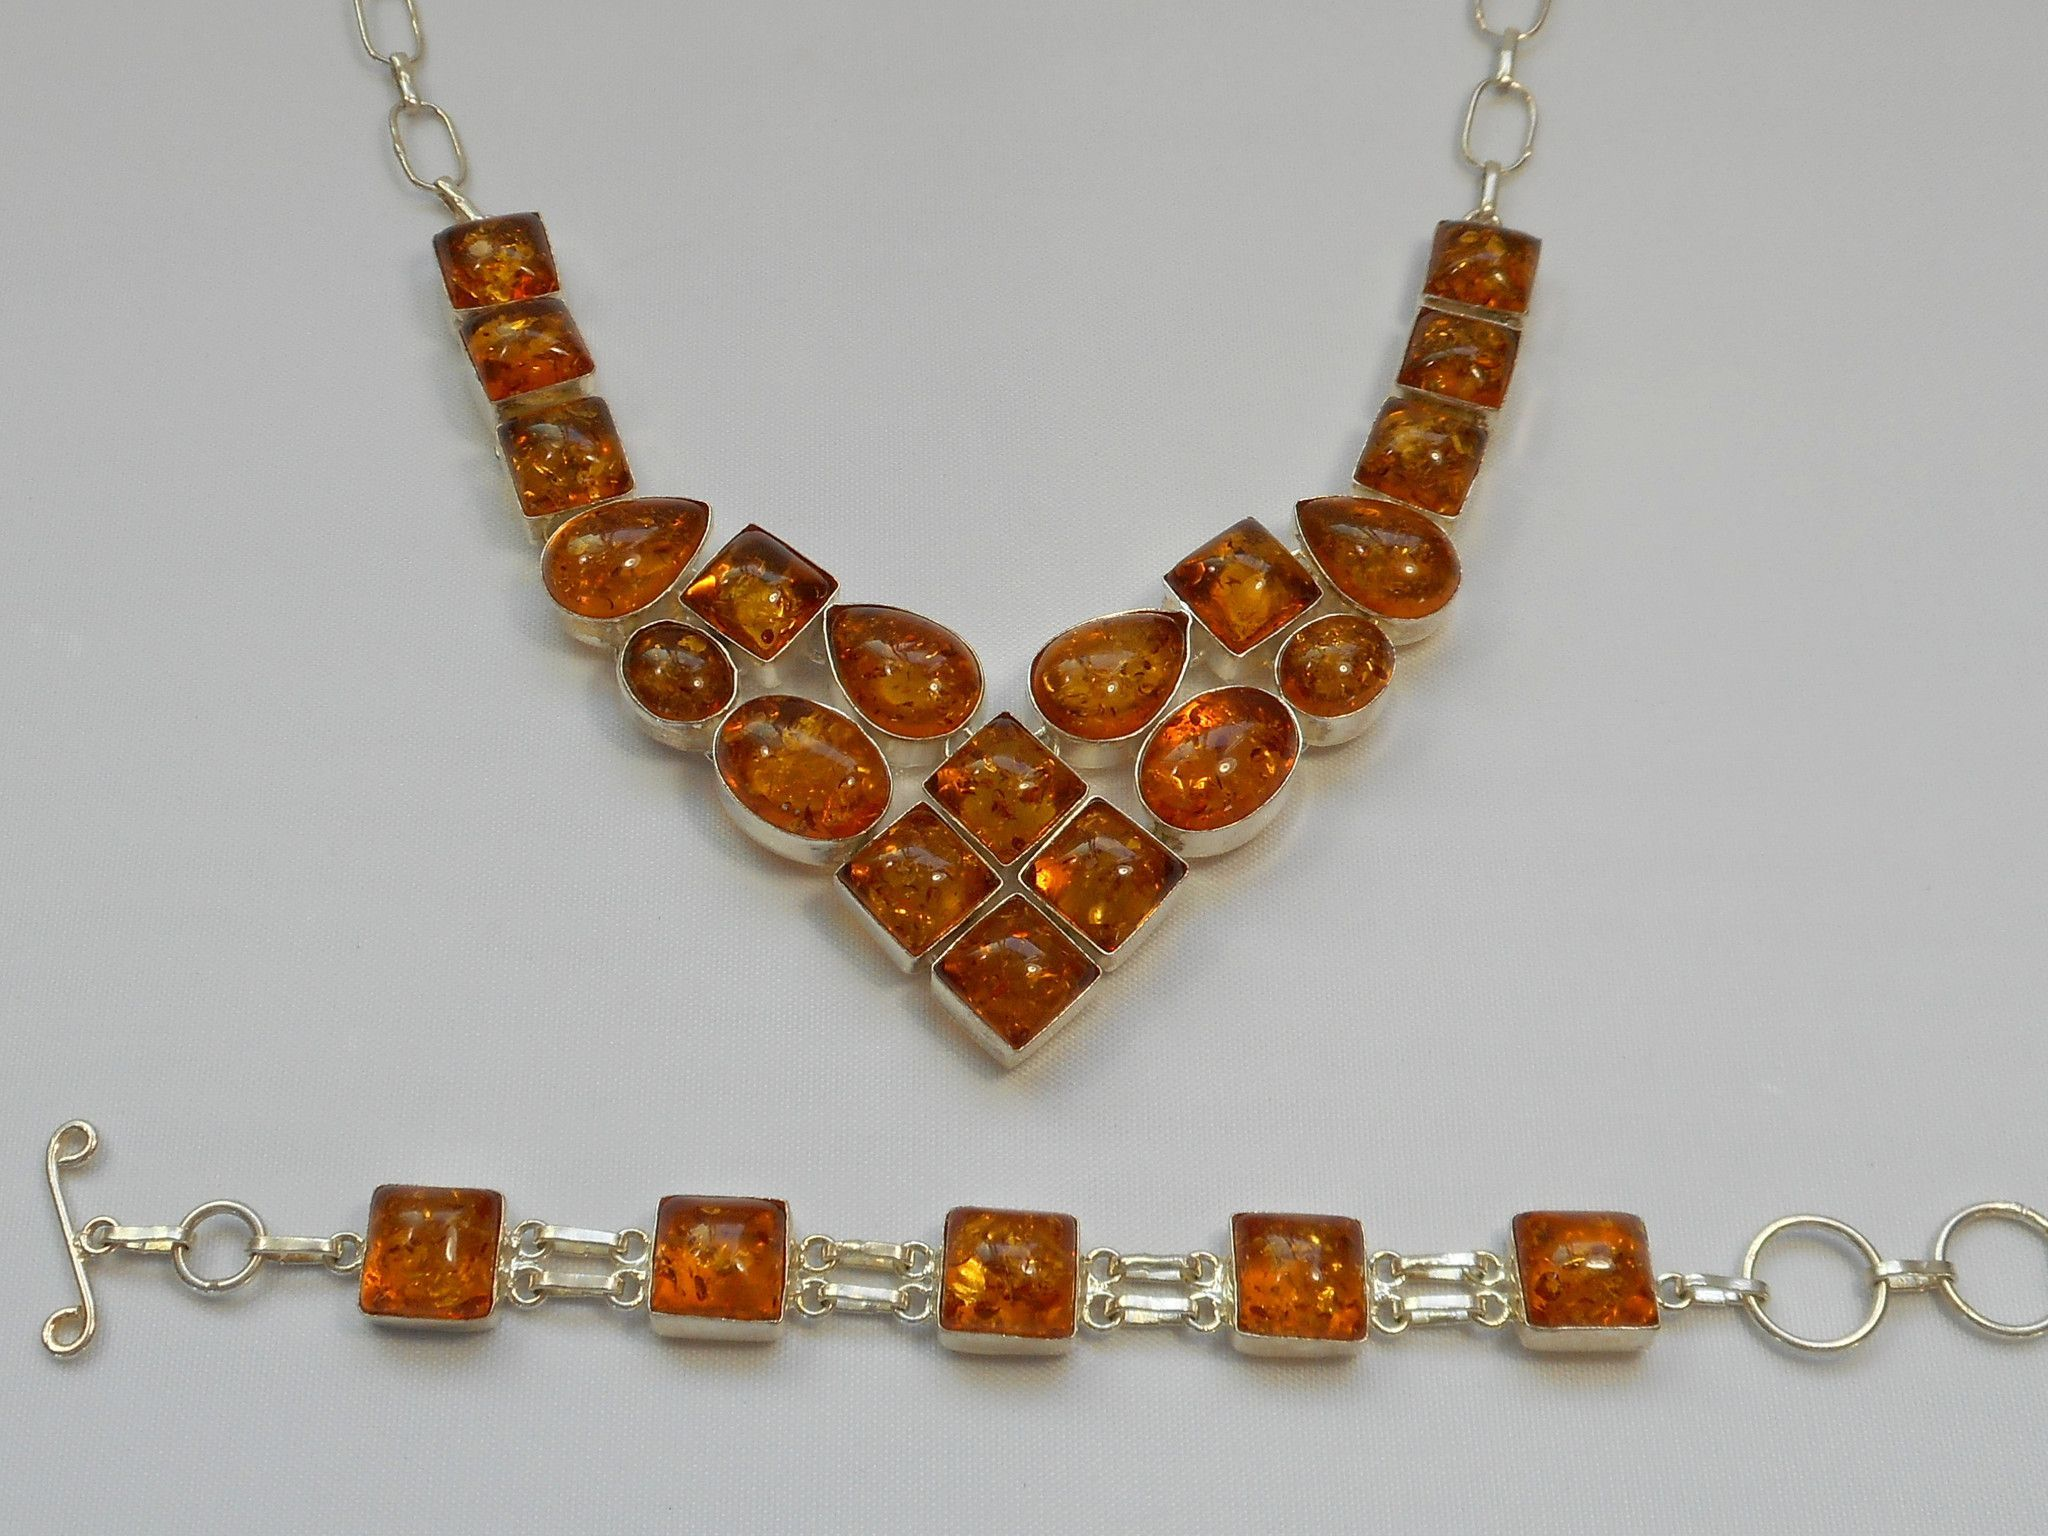 "*Amber Necklace 1: Twenty brilliant highly-polished translucent Amber gemstones rock this handmade necklace, set in 925-hallmarked sterling silver. Length: 15-20""  Widest center dimension: 1.75"""